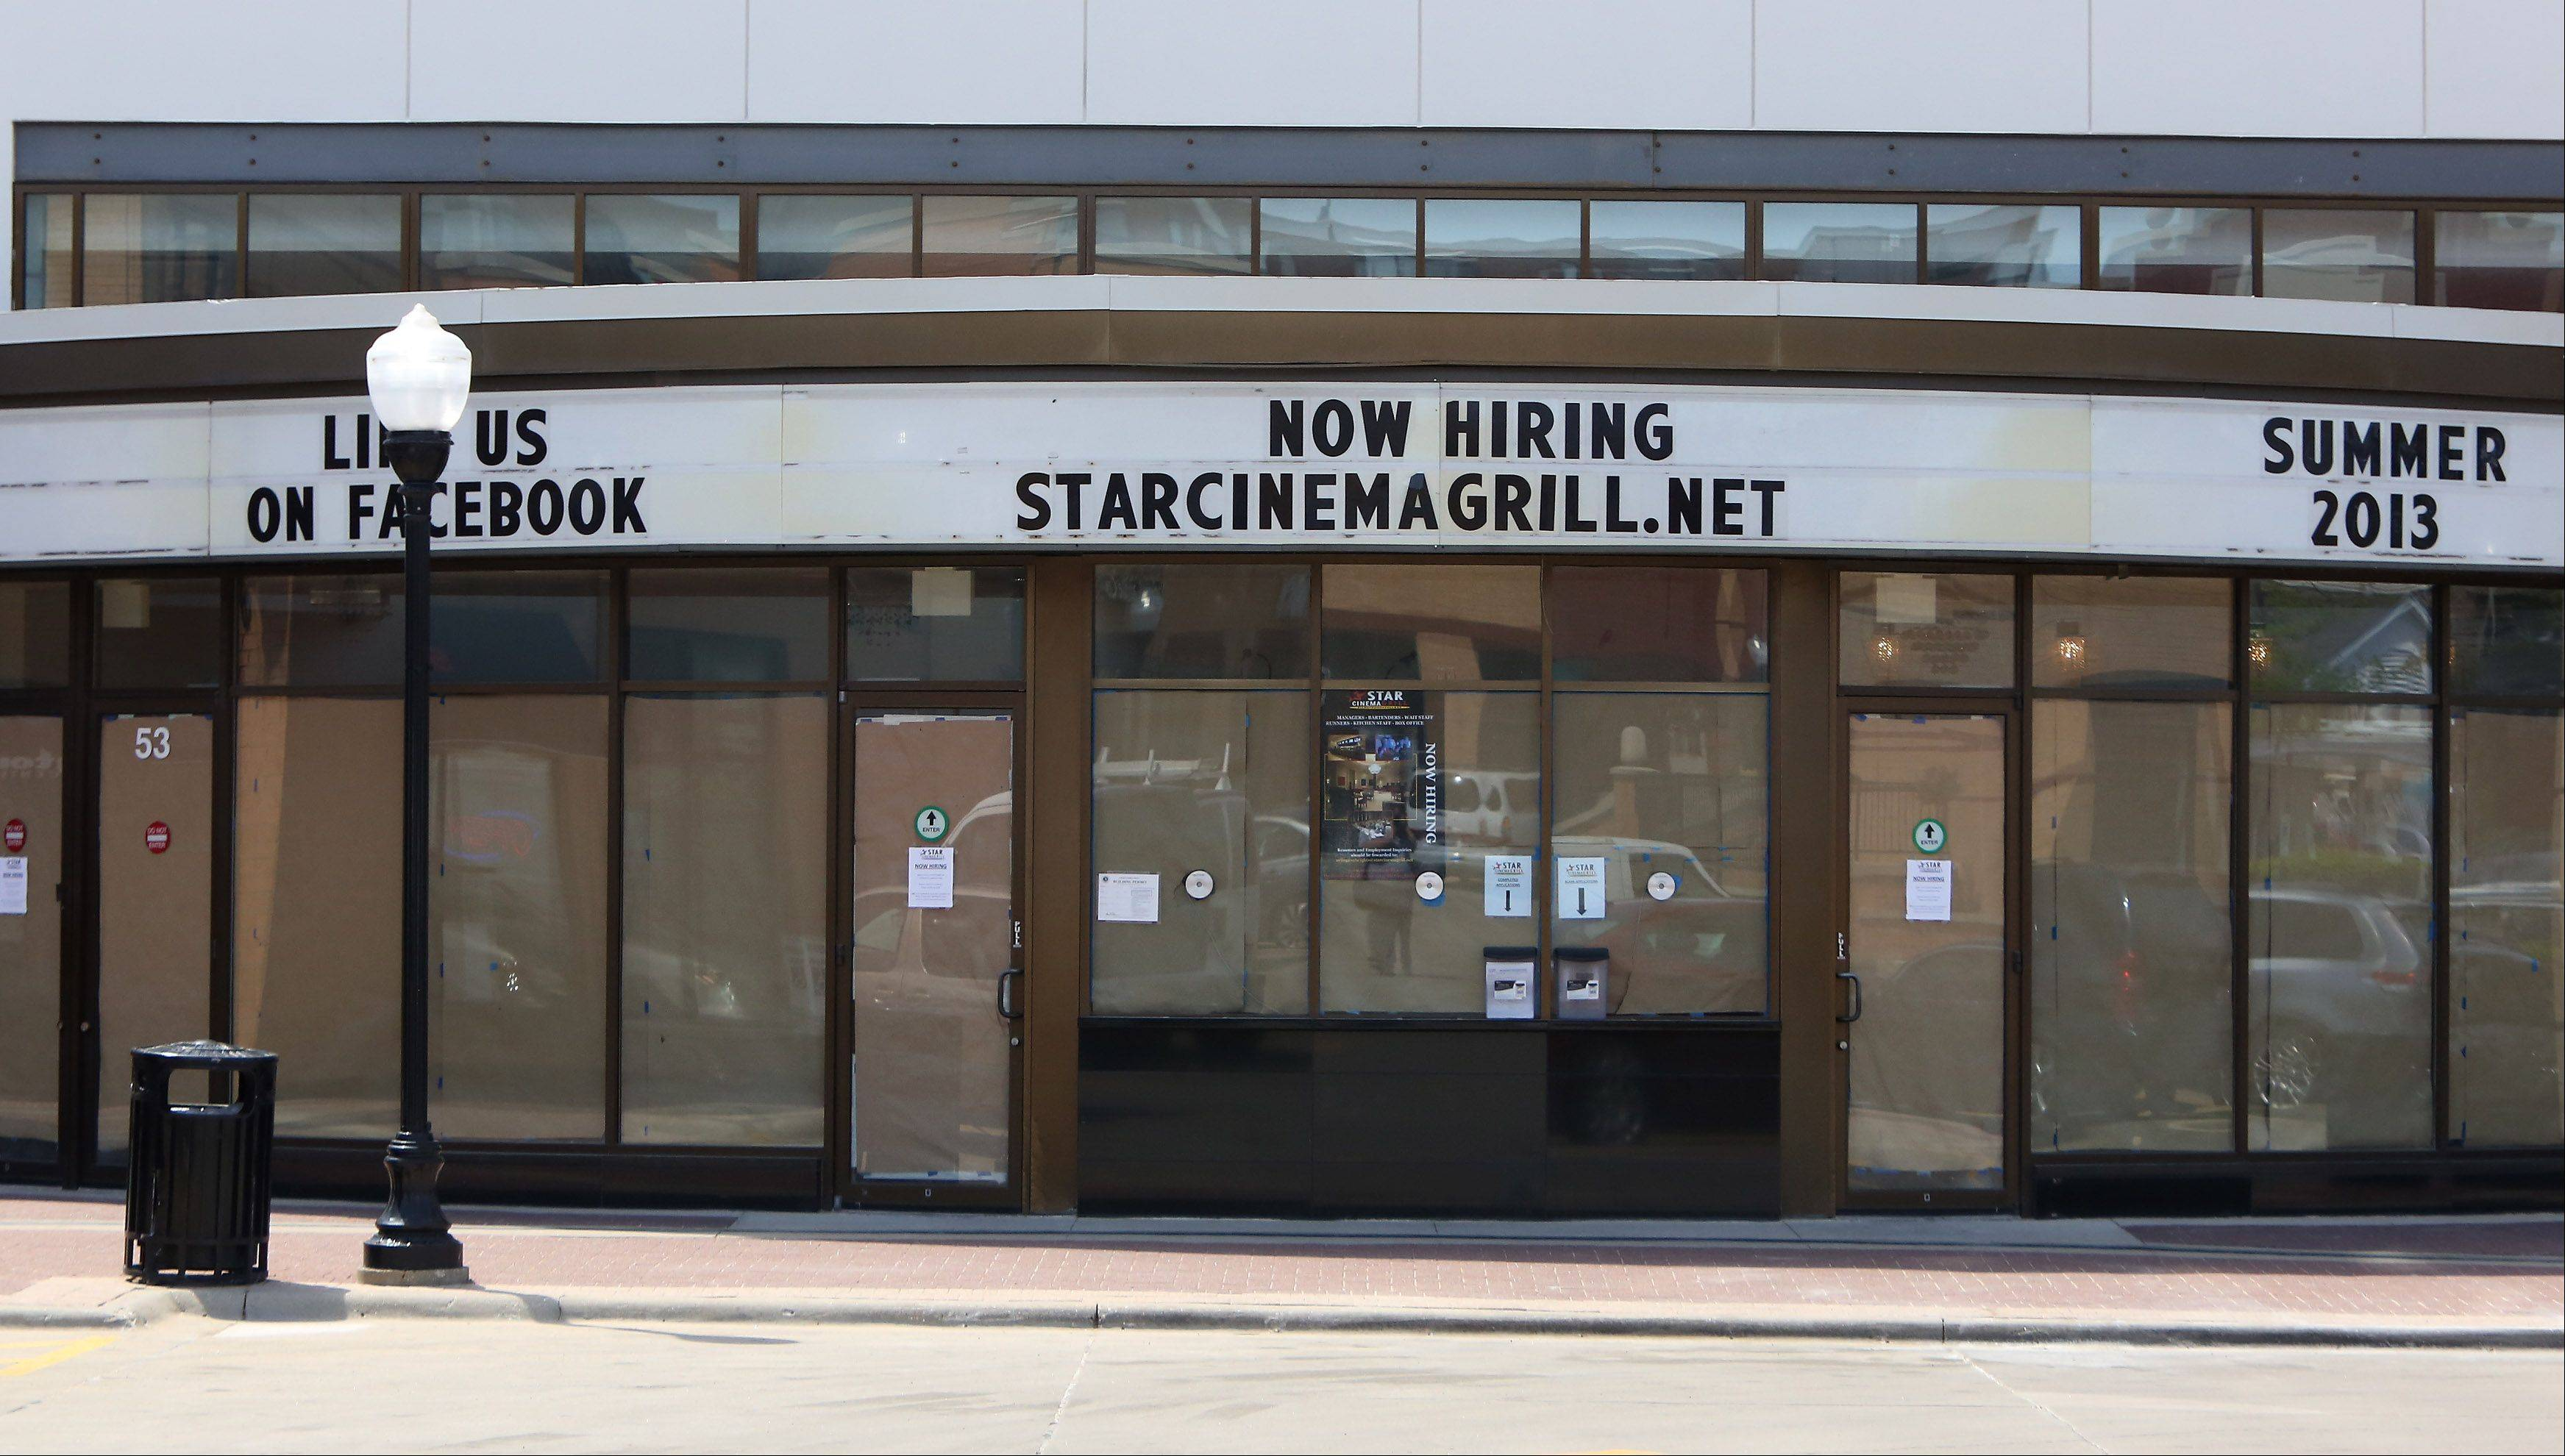 Workers are putting the finishing touches on the new Star Cinema Grill, which is scheduled to open in June in downtown Arlington Heights.